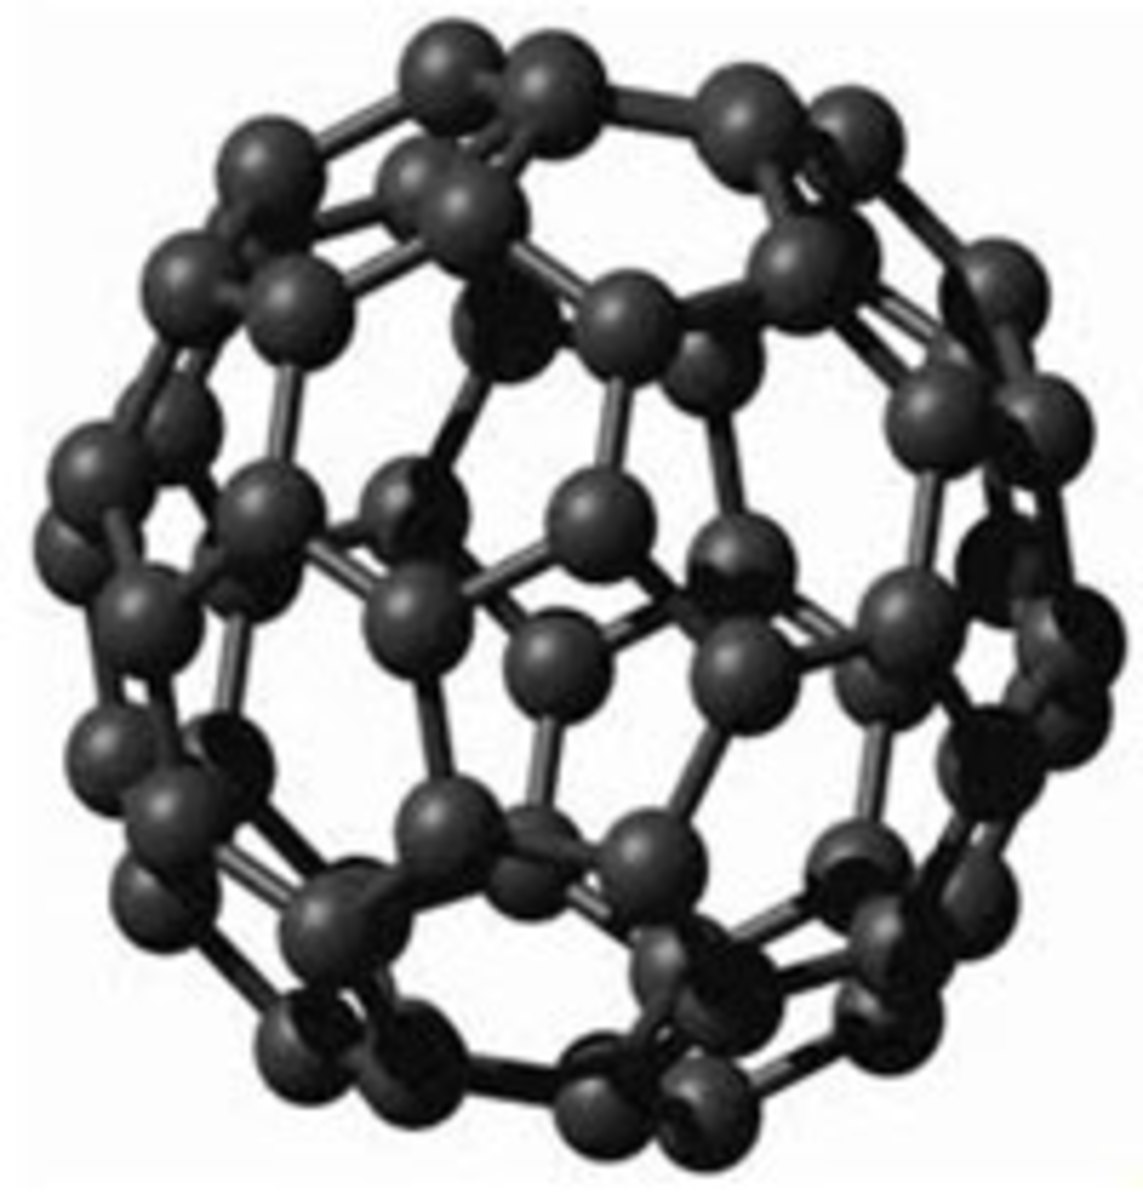 This is the basic shape of a Shungite fullerene enlarged. Fullerenes resonate in the far infrared spectrum with all forms of living matter.